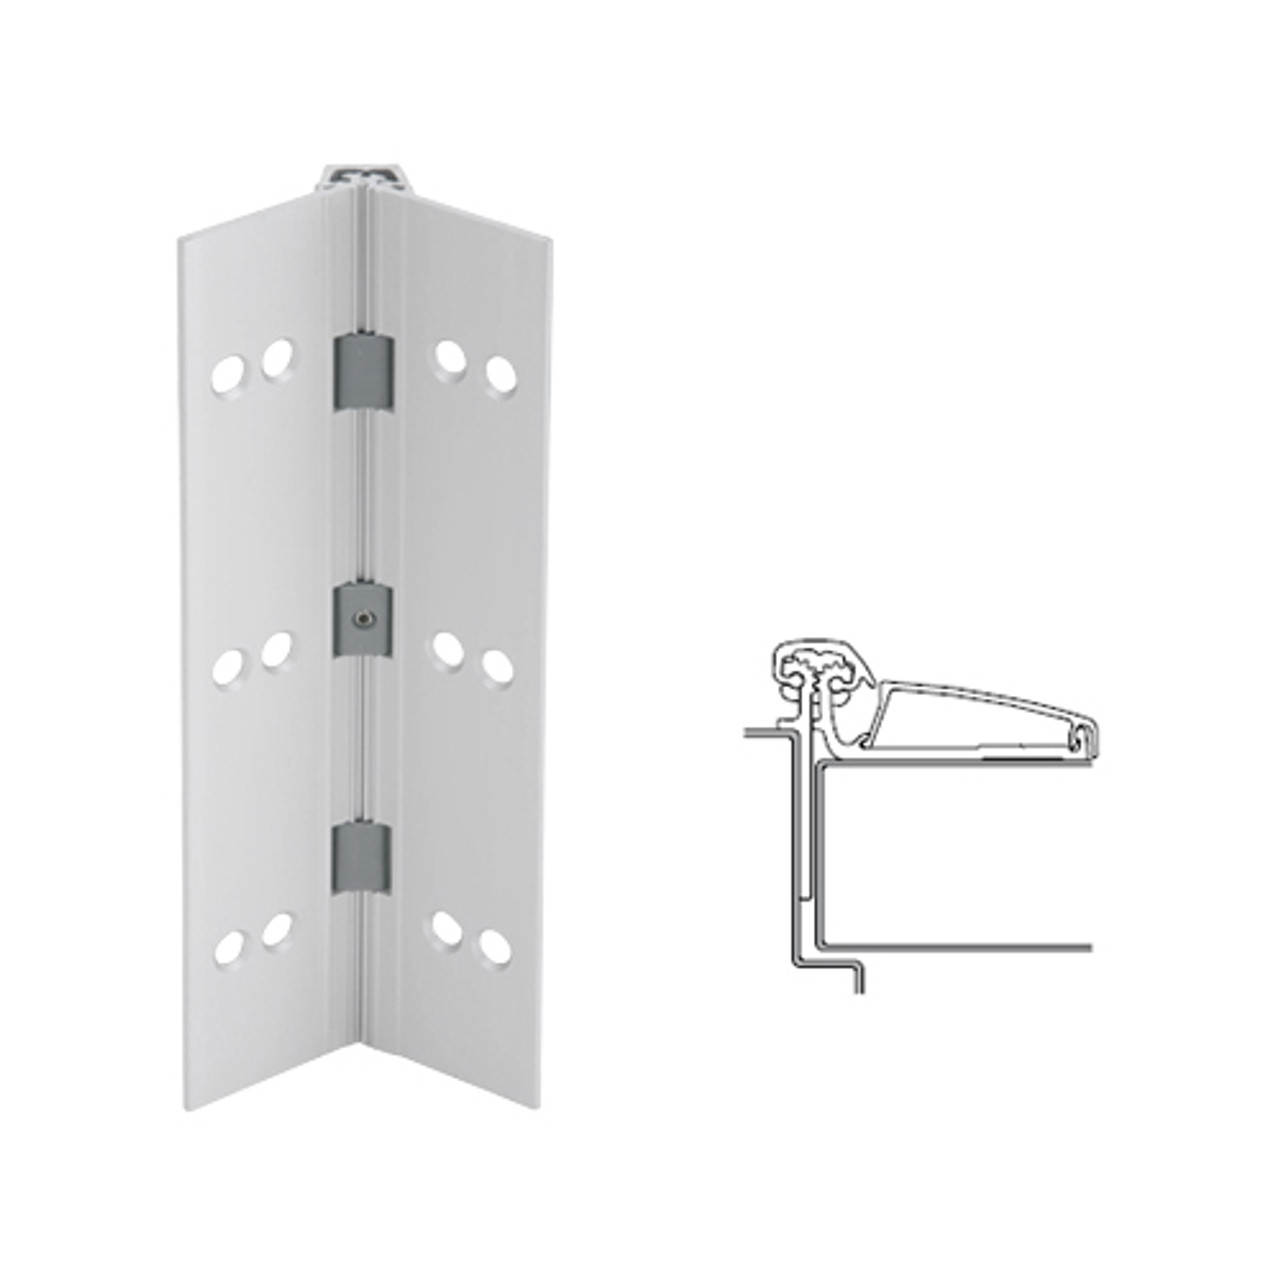 045XY-US28-120-TFWD IVES Adjustable Half Surface Continuous Geared Hinges with Thread Forming Screws in Satin Aluminum